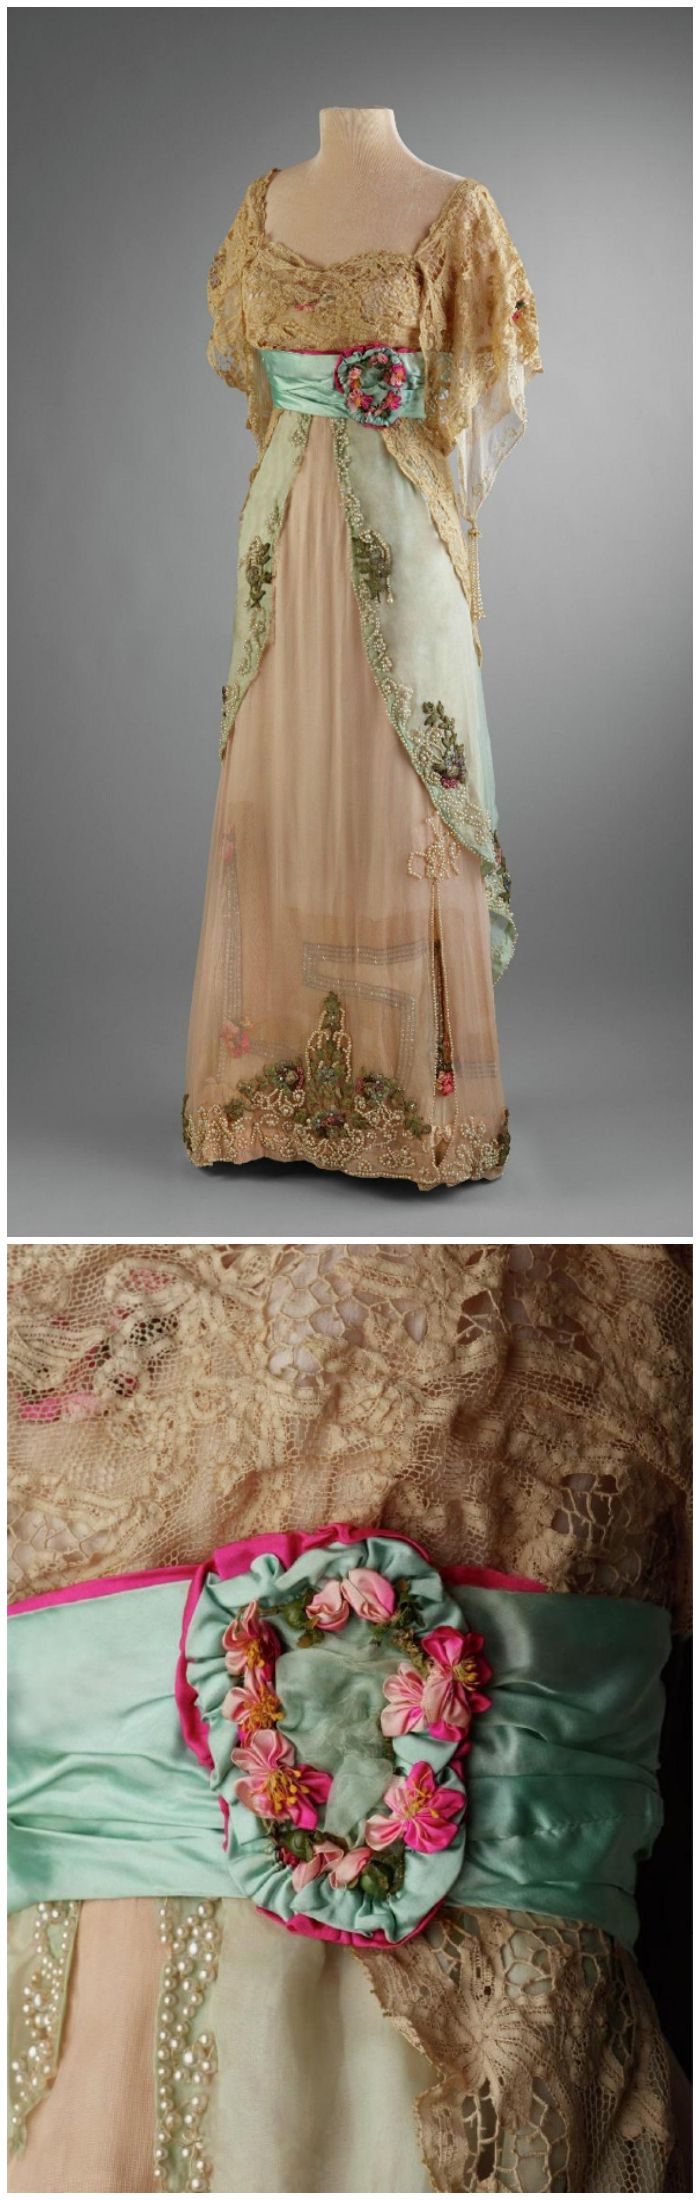 1911-1913 Evening dress, by Widoff, New York. High-waisted Edwardian party gown with a narrow sheath underskirt of plain silk charmeuse and a multilayered overskirt of silk lawn. The short, full lace sleeves cover a white lawn undersleeve edged with miniature pearls and ending in pearl tassels. A pale turquoise satin waist sash backed with bright pink satin closes on the left side with a decorative oval medallion of the pink ribbon flowers.